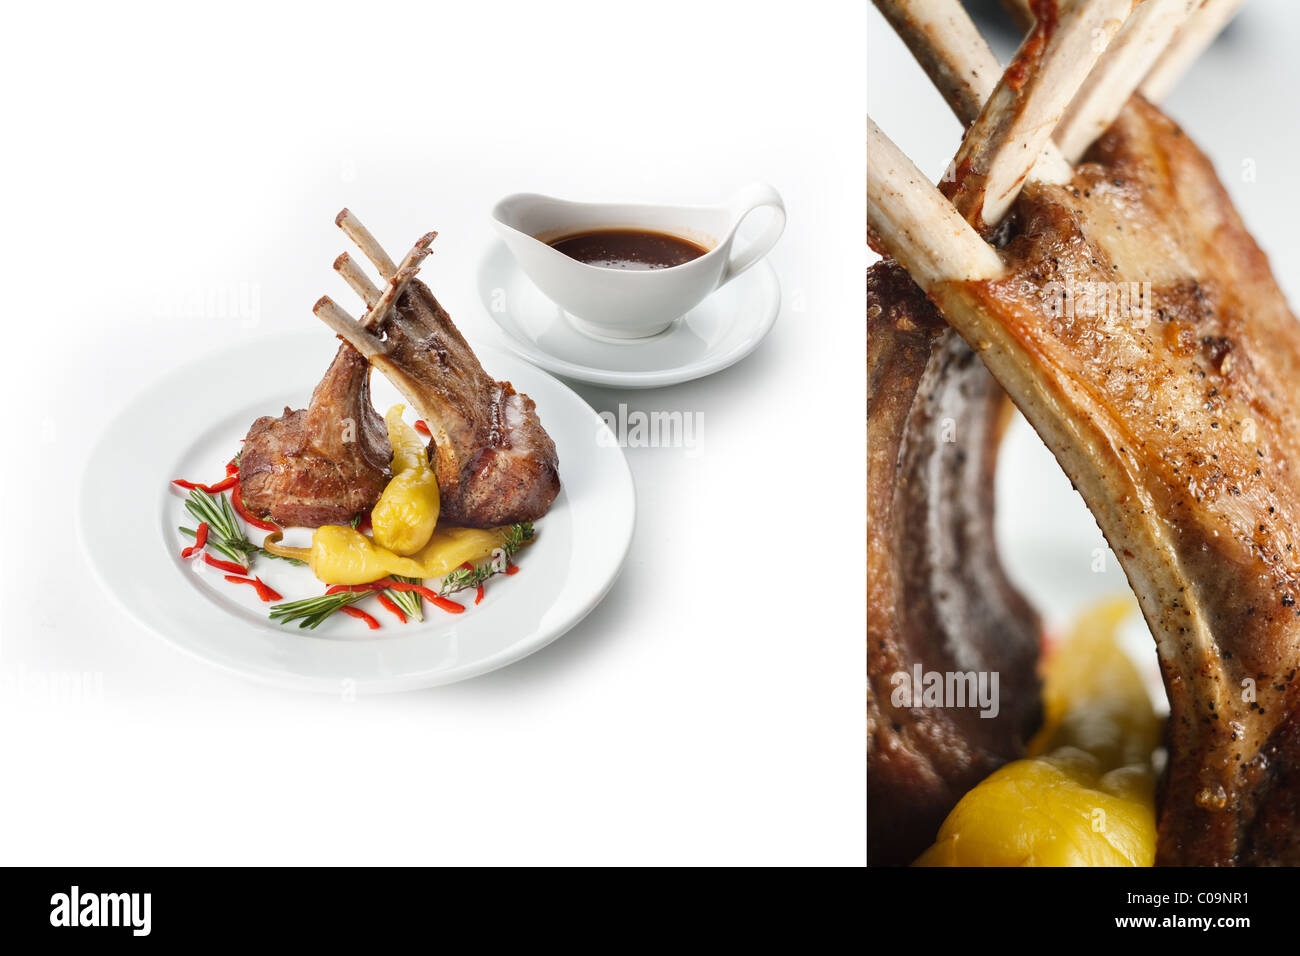 mutton on white plate with vegetables and souse for menu restaurant dinner food - Stock Image